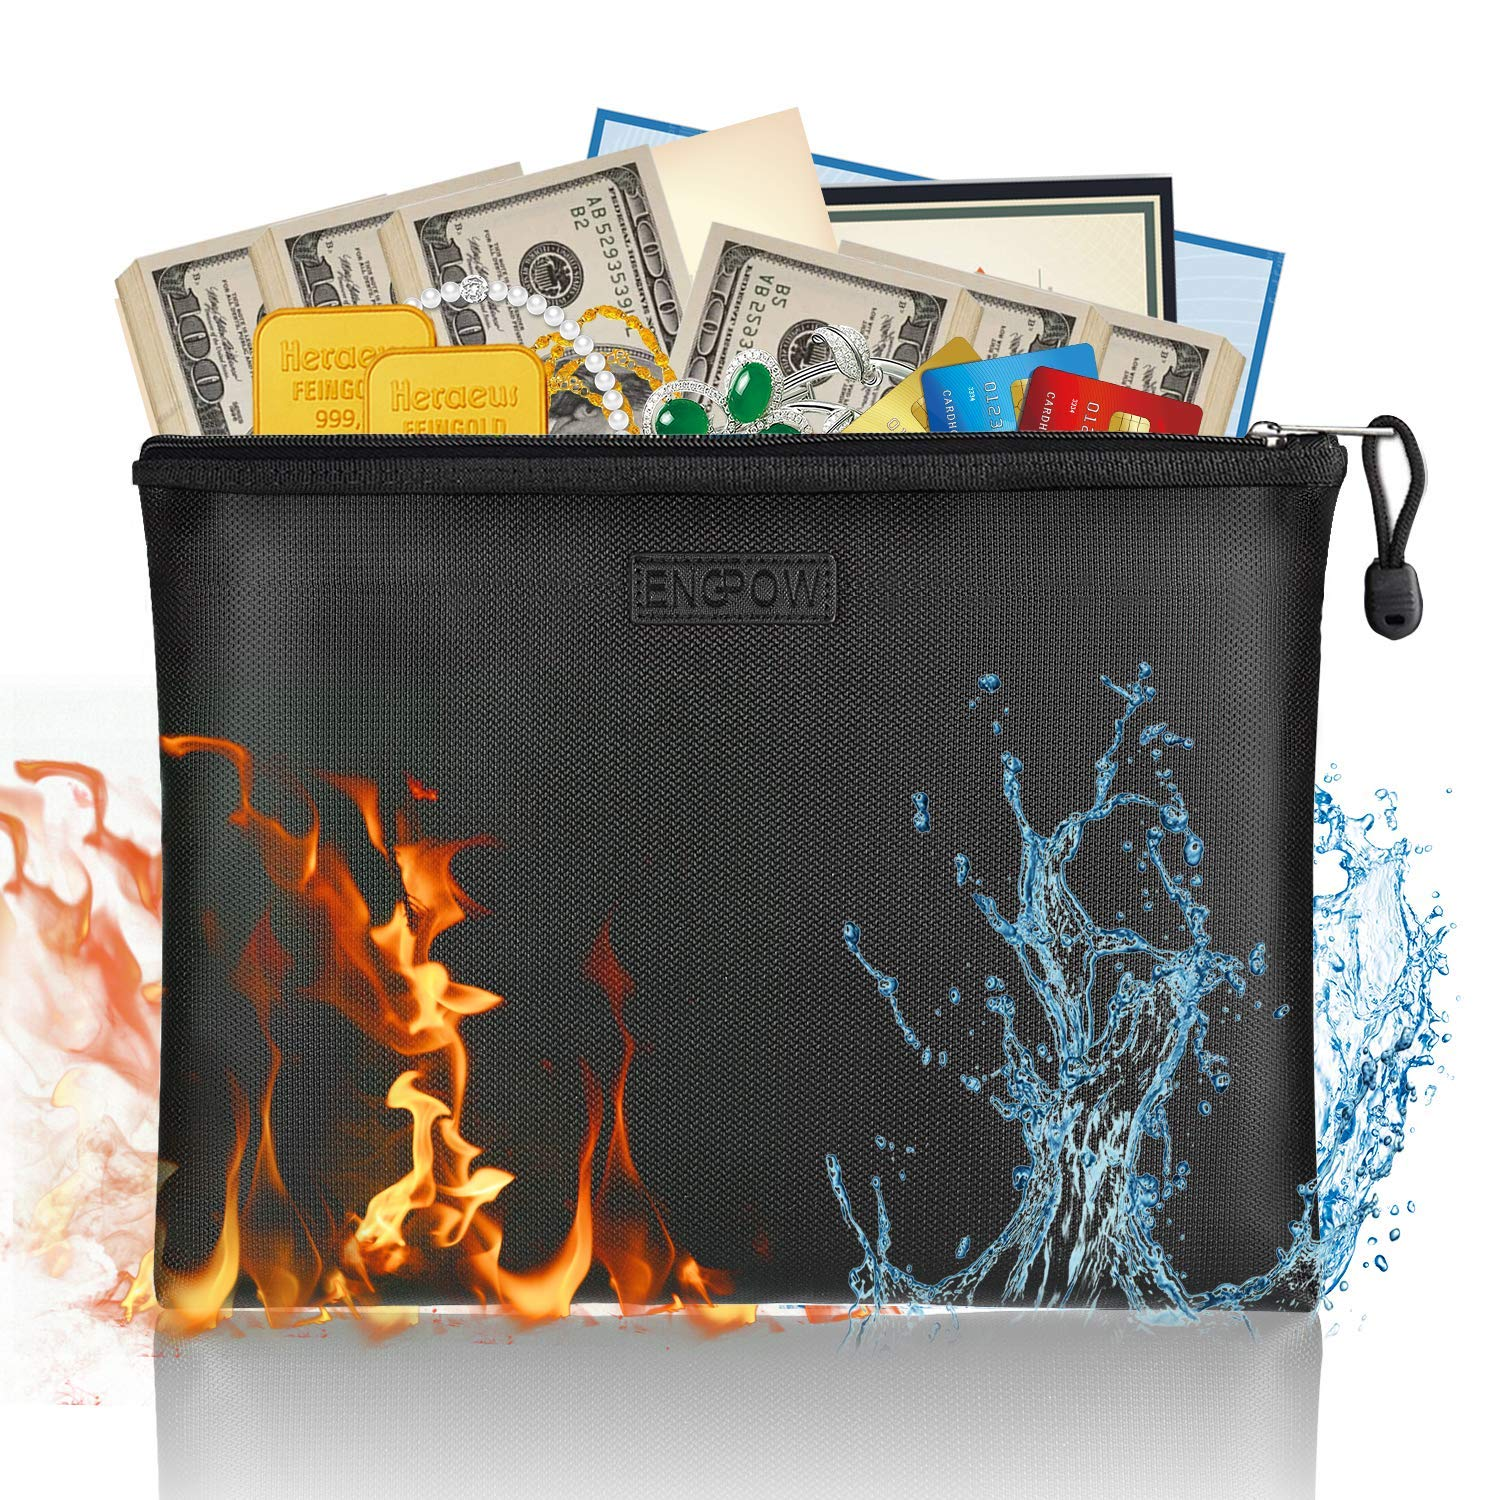 ENGPOW Fireproof Money Bag/Silicone Coated Fire Water Resistant for Document, Securit Bank Deposit with Utility Zipper Coin Bag,11.5X7.9 inches Check Wallet,Black